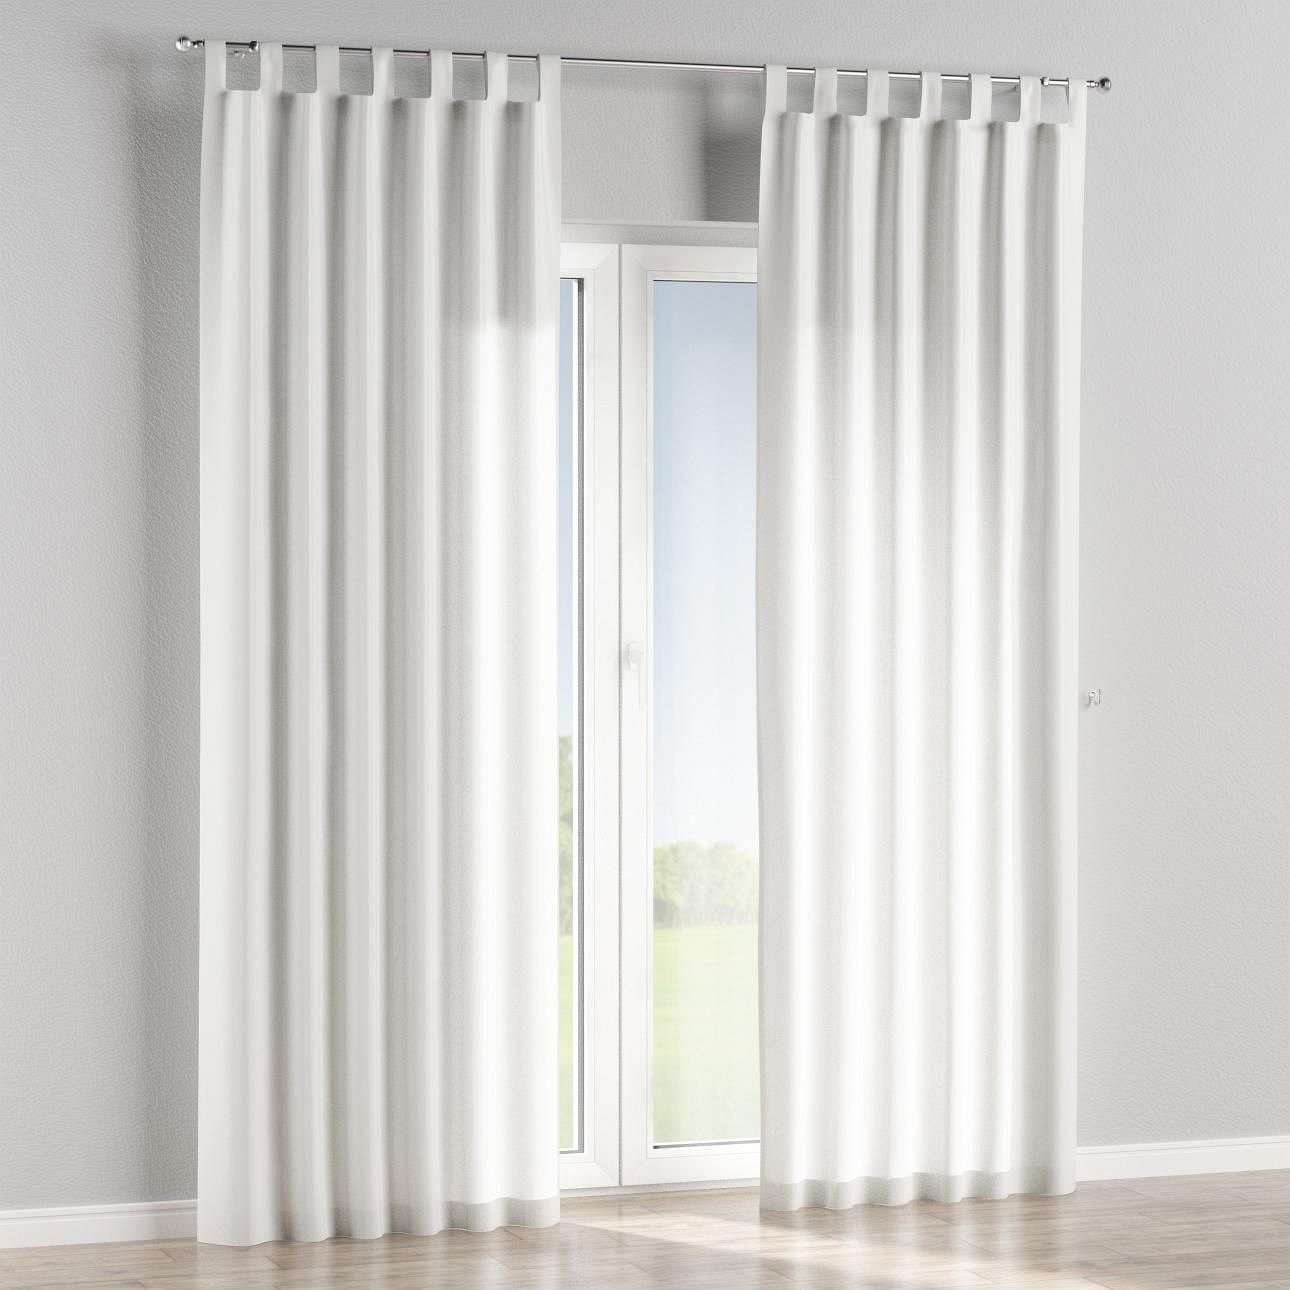 Tab top lined curtains in collection Bristol, fabric: 126-48